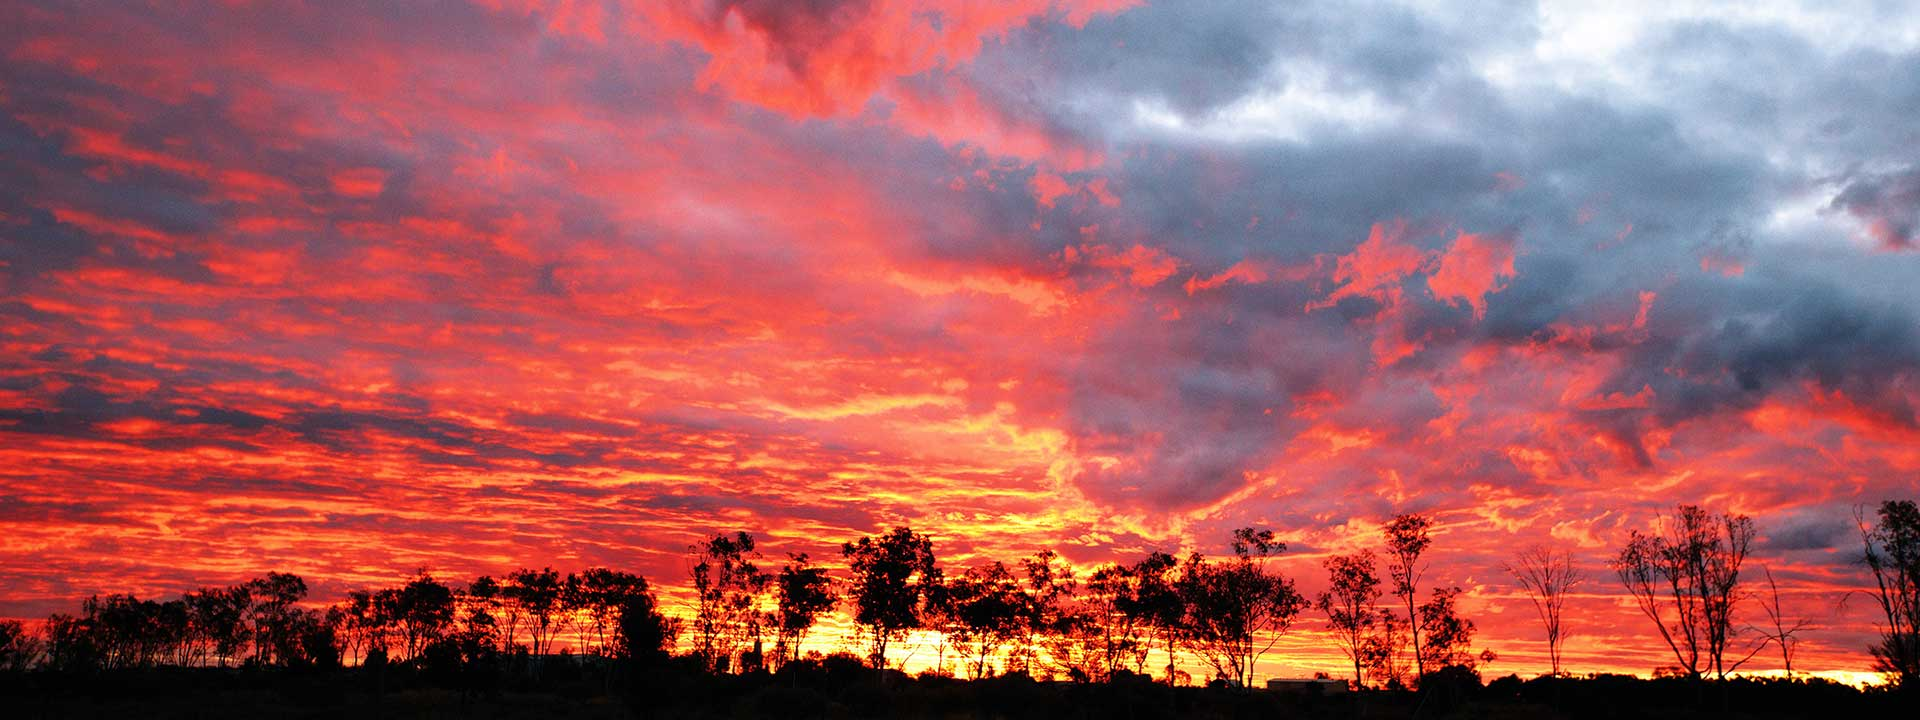 Firestorm sunset brewing over Thargomindah